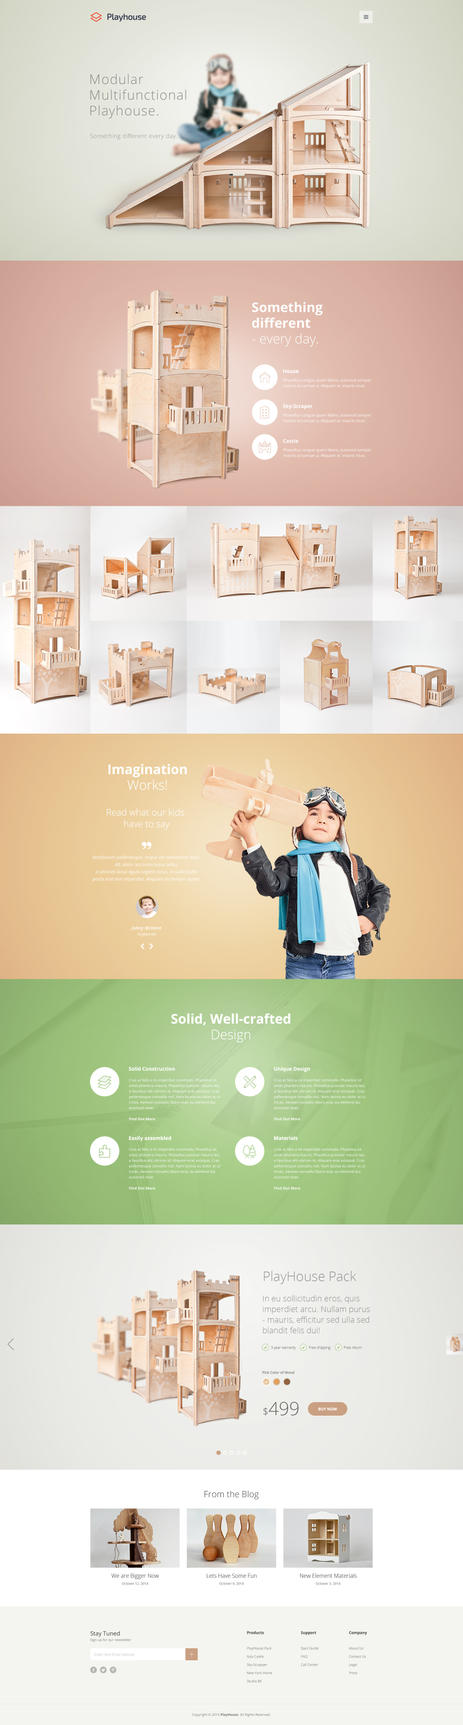 PlayHouse - Modest Shop - eCommerce PSD Template by bcubepl